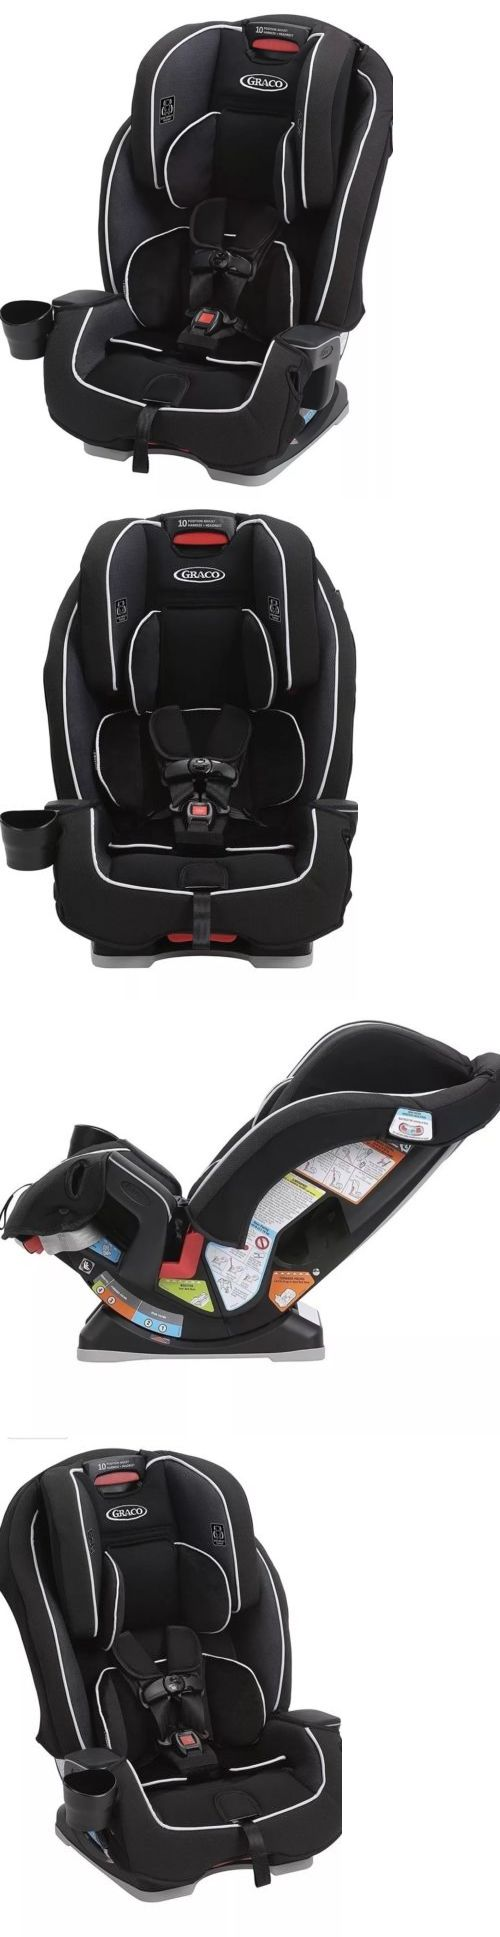 Convertible Car Seat 5 40lbs 66695 Graco Milestone All In One